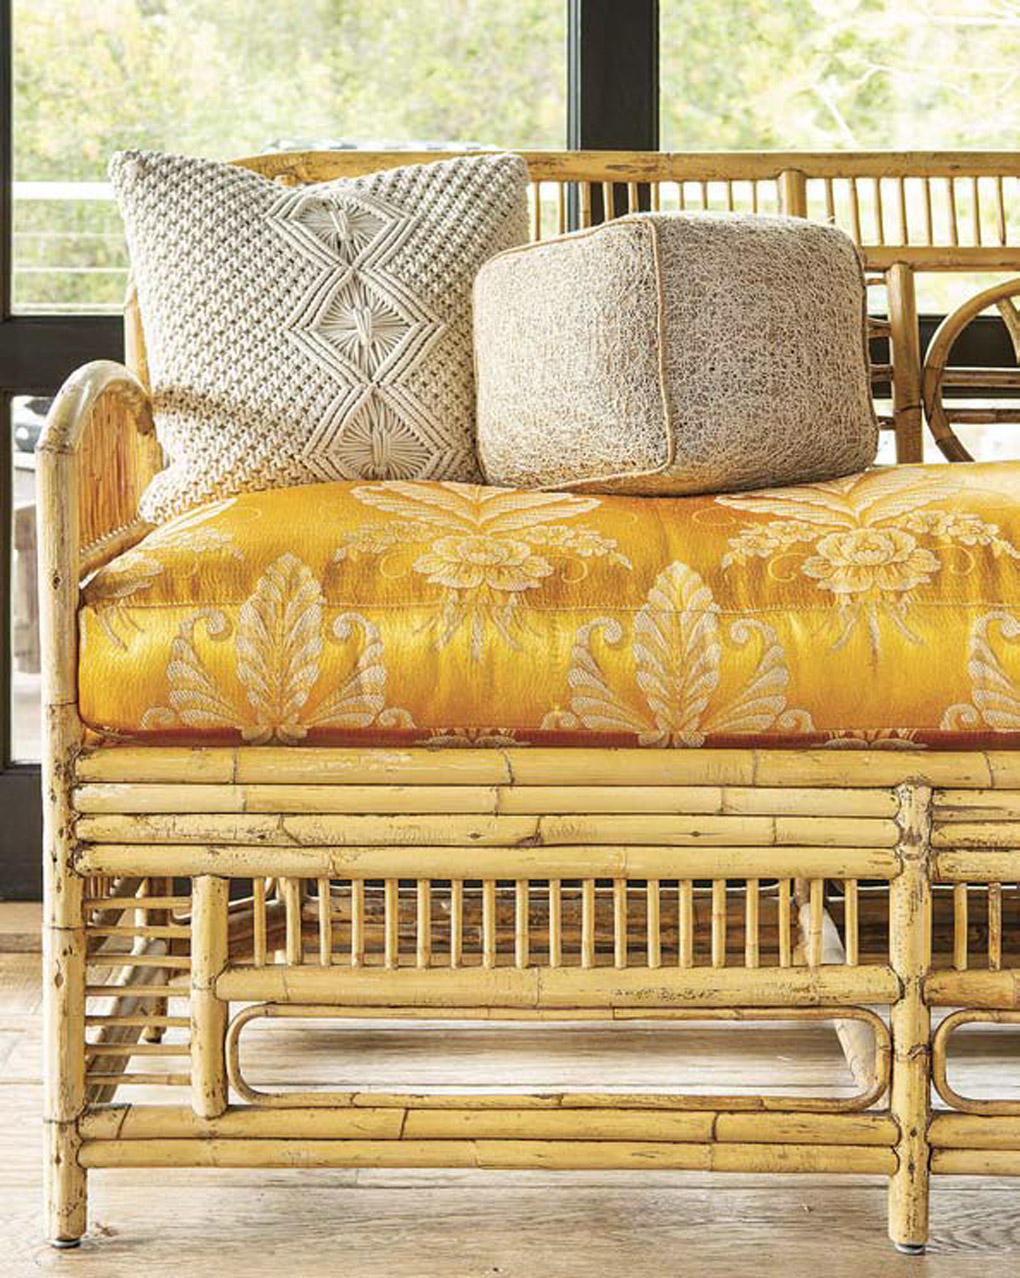 Rattan styled dining sofa with a 1940s satin cushion in butterscotch.